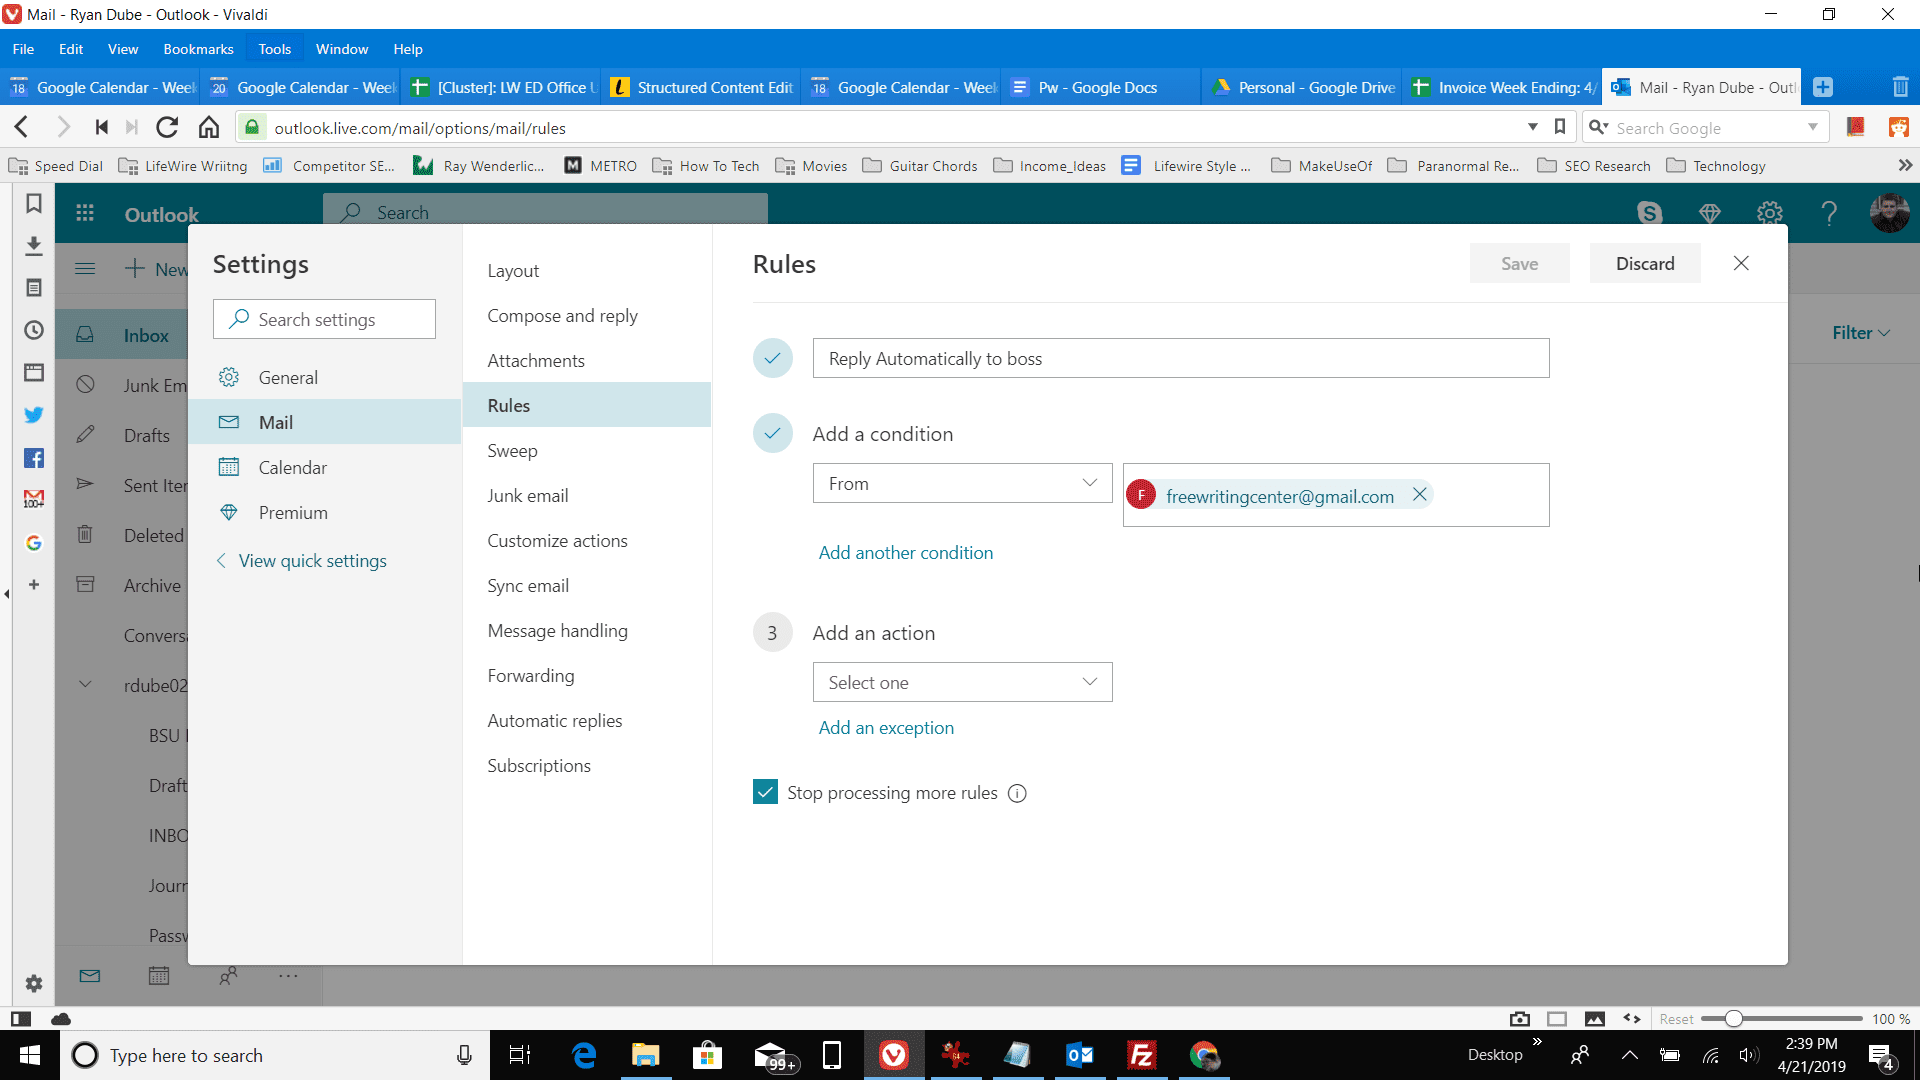 Screenshot of adding a rules condition in Outlook online